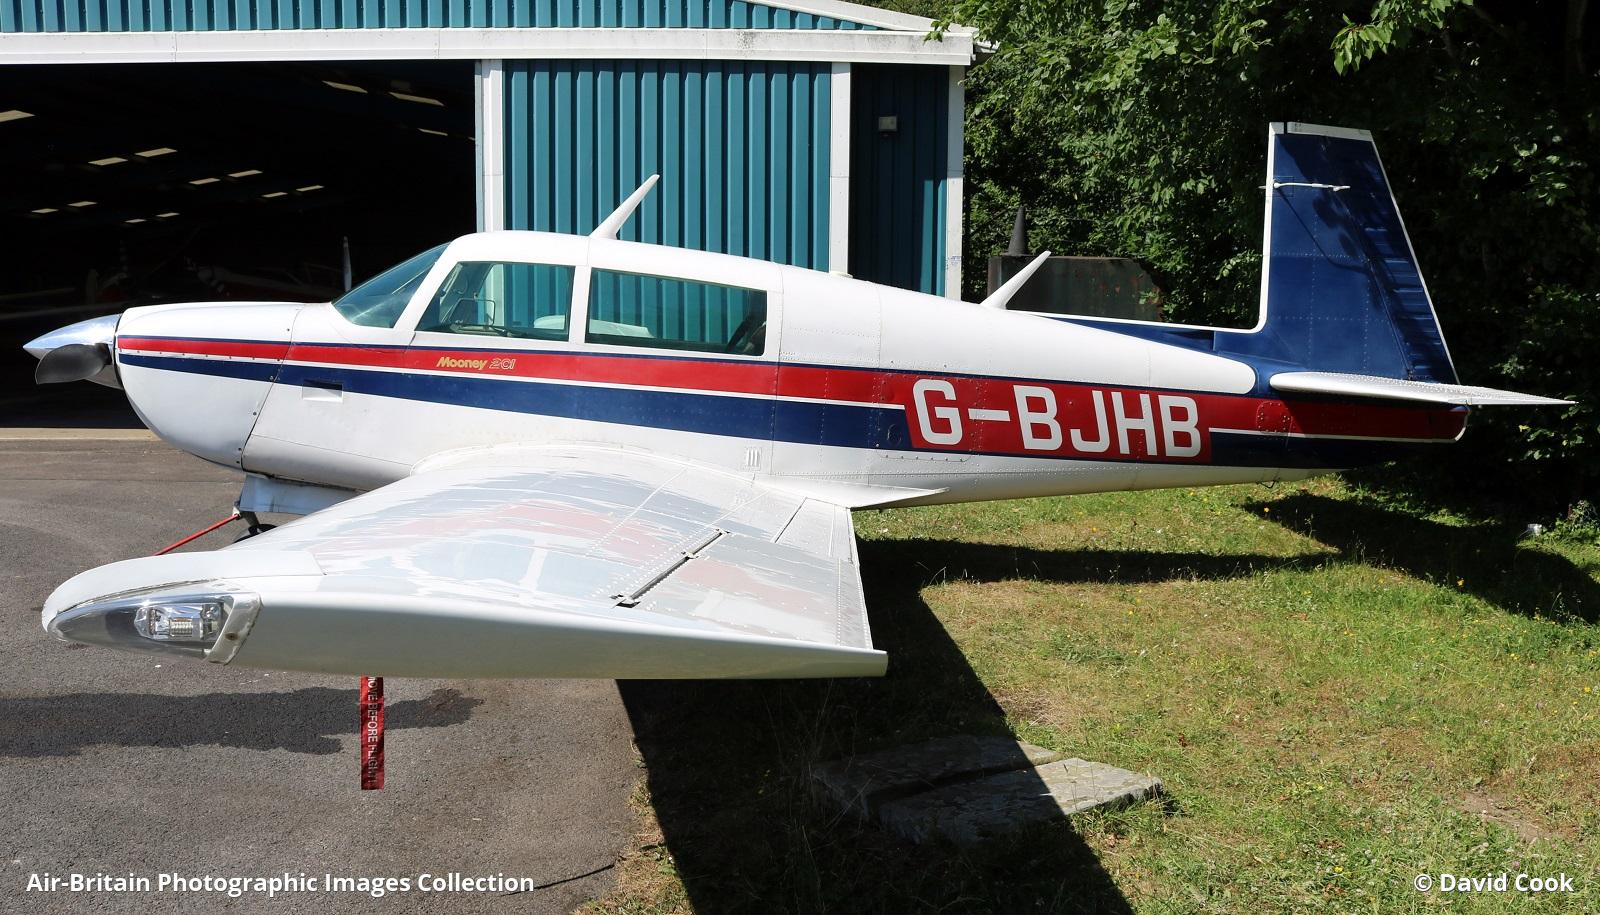 Aro Teppiche Augsburg Aviation Photographs Of Mooney M 20j 201 Abpic